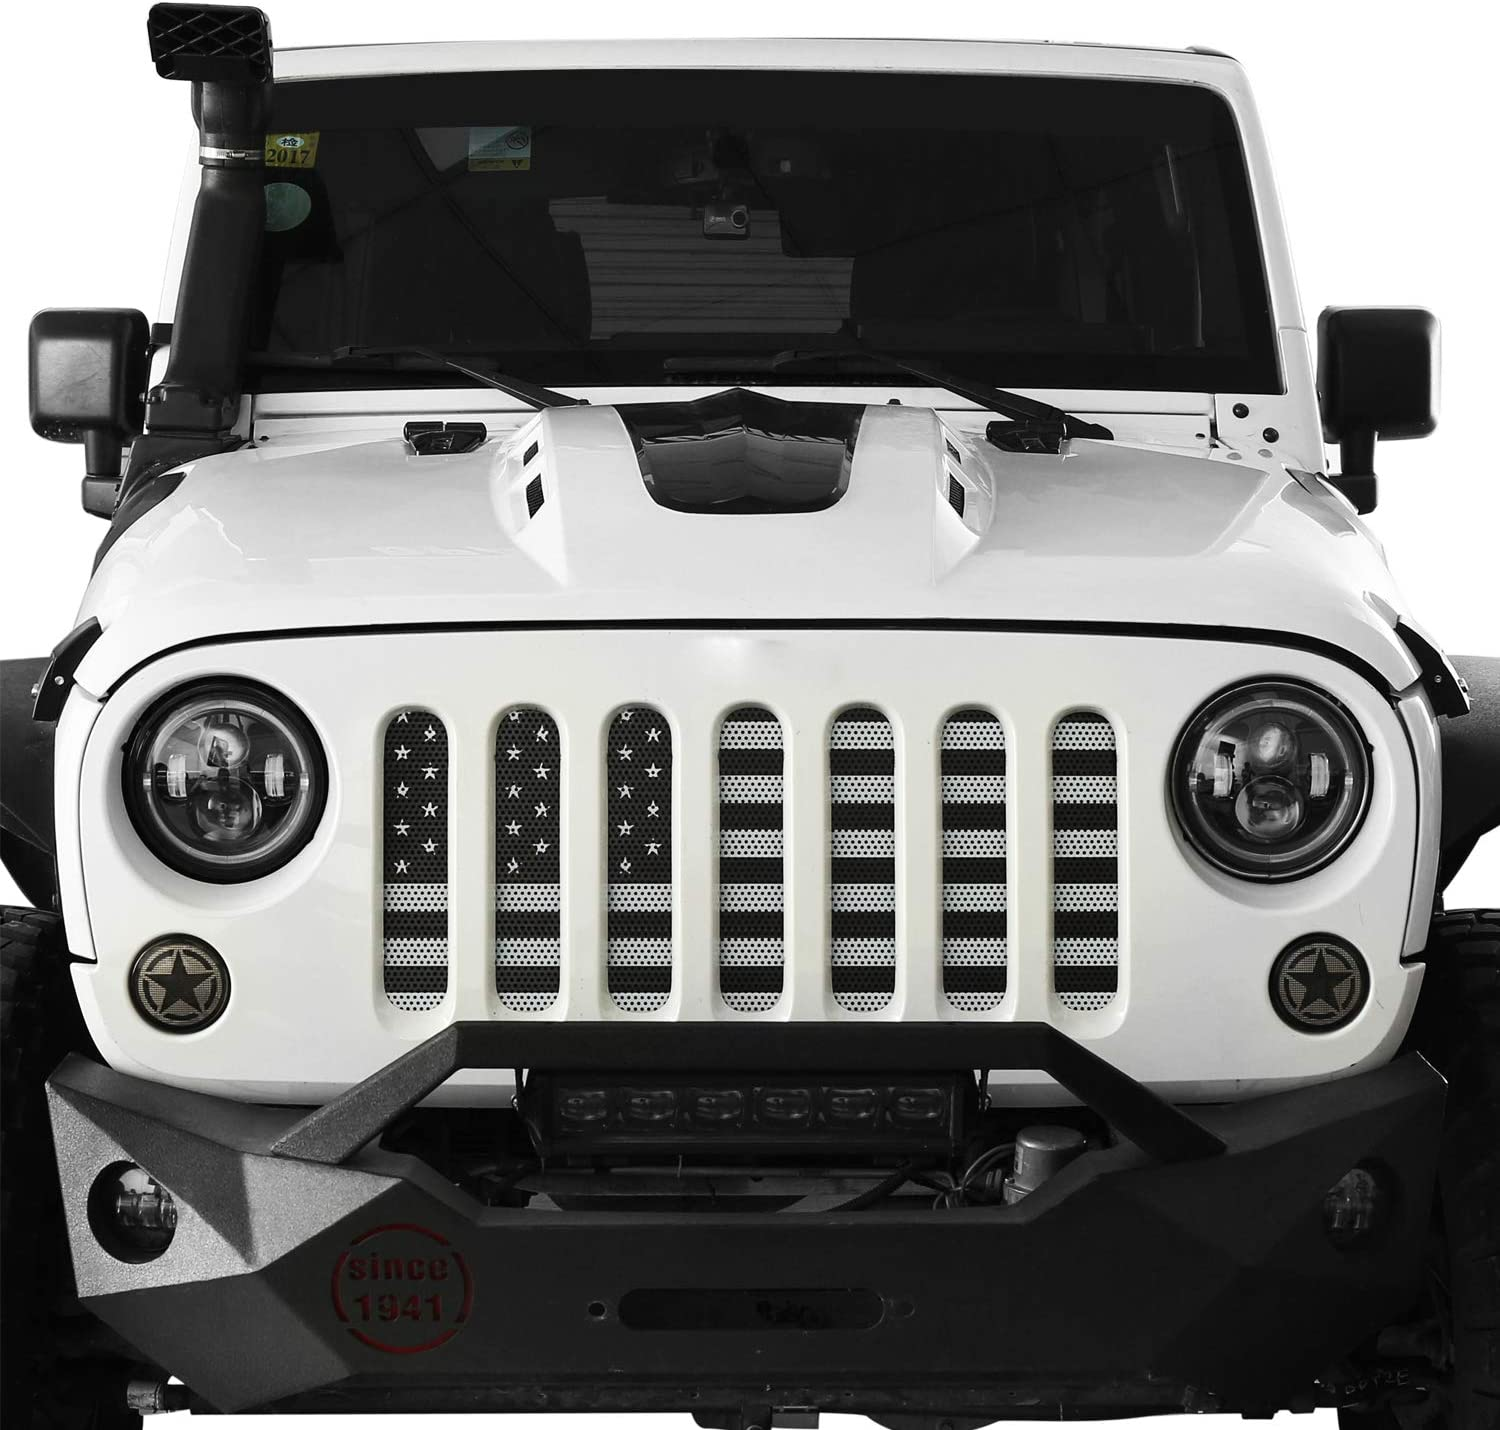 Classic Black /& White Kutang Modified Jeep American Flag Grille Screen Steel Front Grille Grid Grill Mesh Screen Insert Suitable for 2007-2018 Jeep Wrangler JK /& JK Unlimited